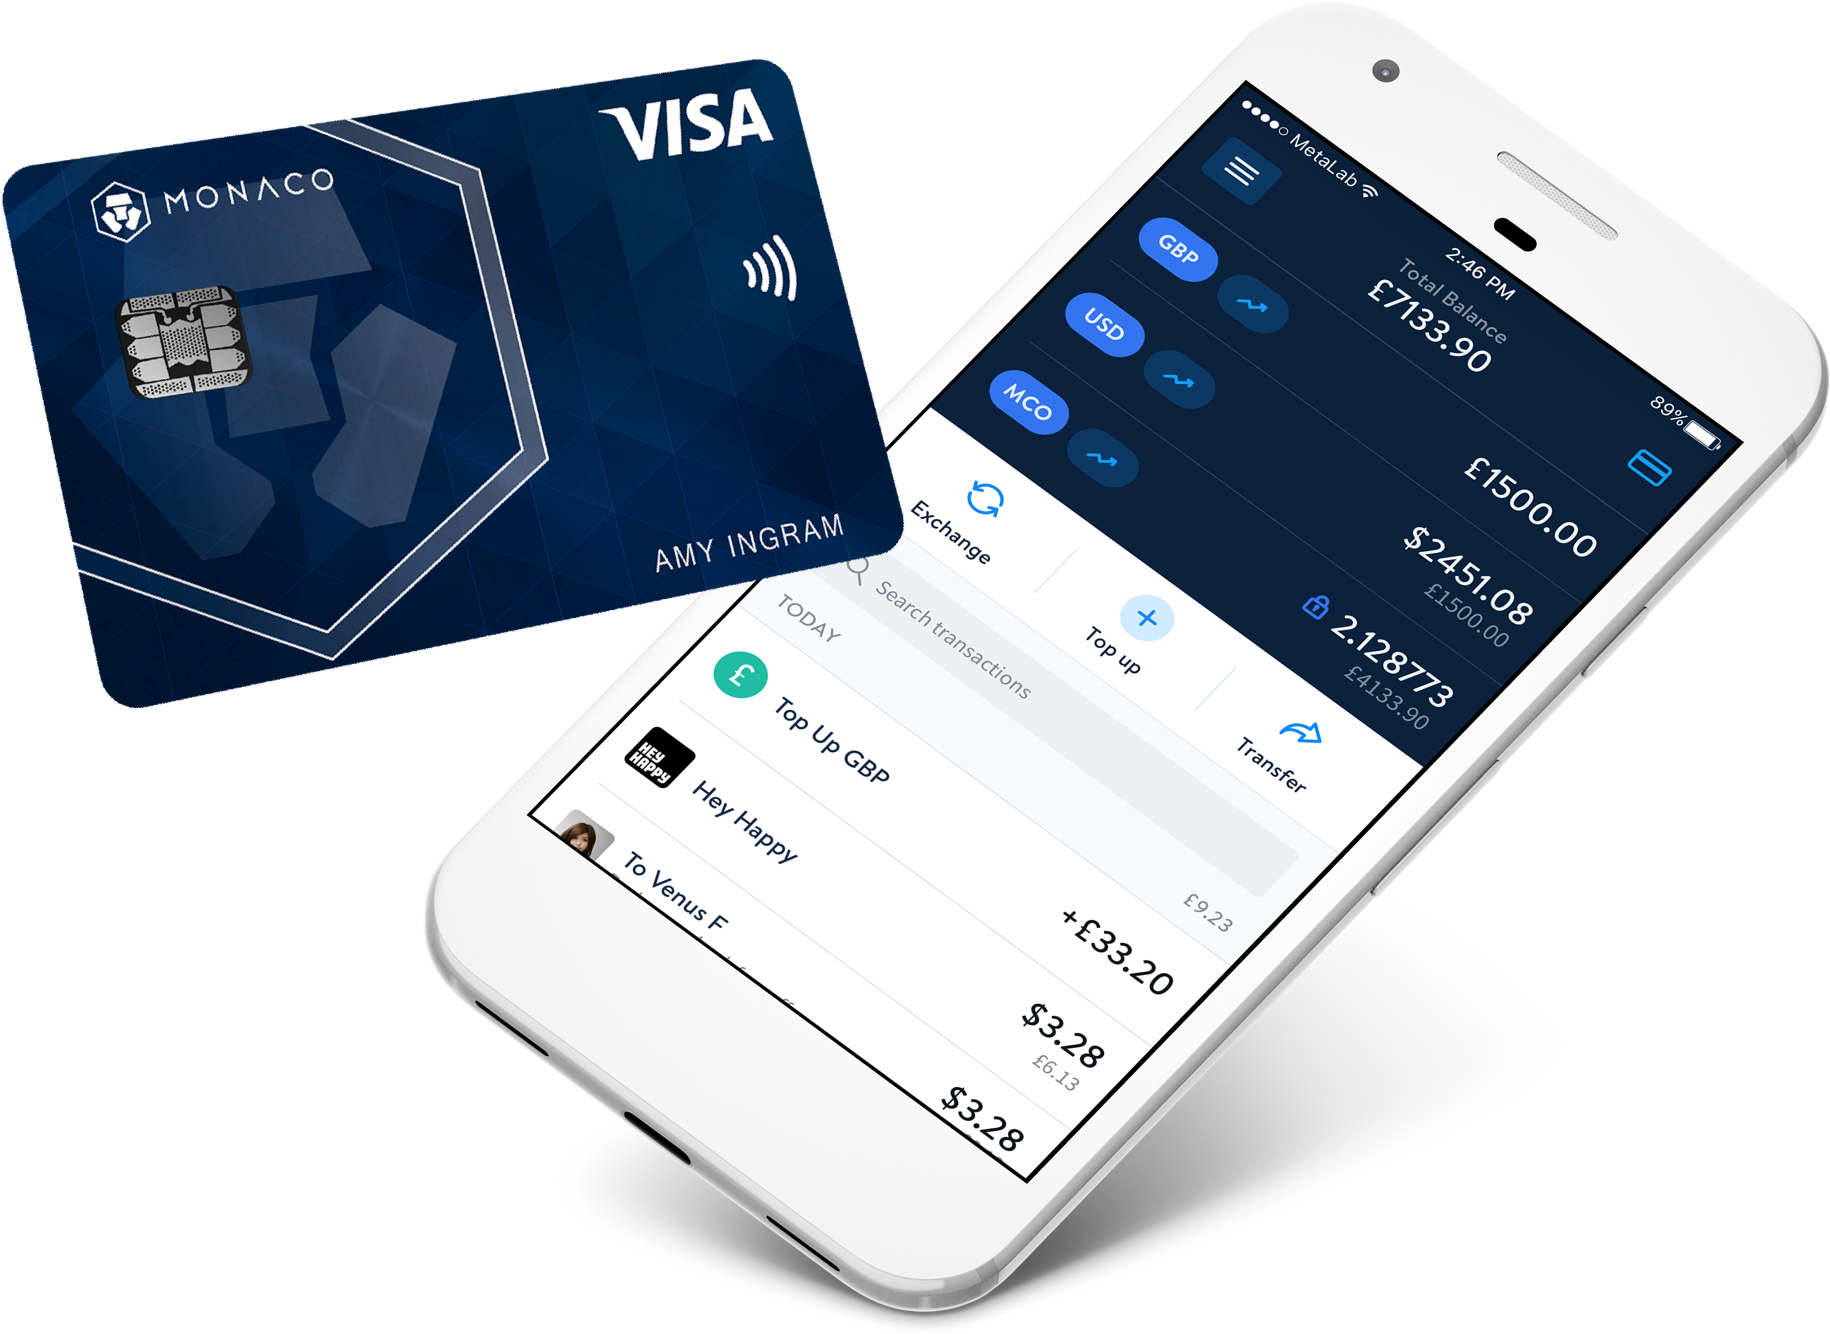 Monaco Cryptocurrency Card Gets a Nod from Visa